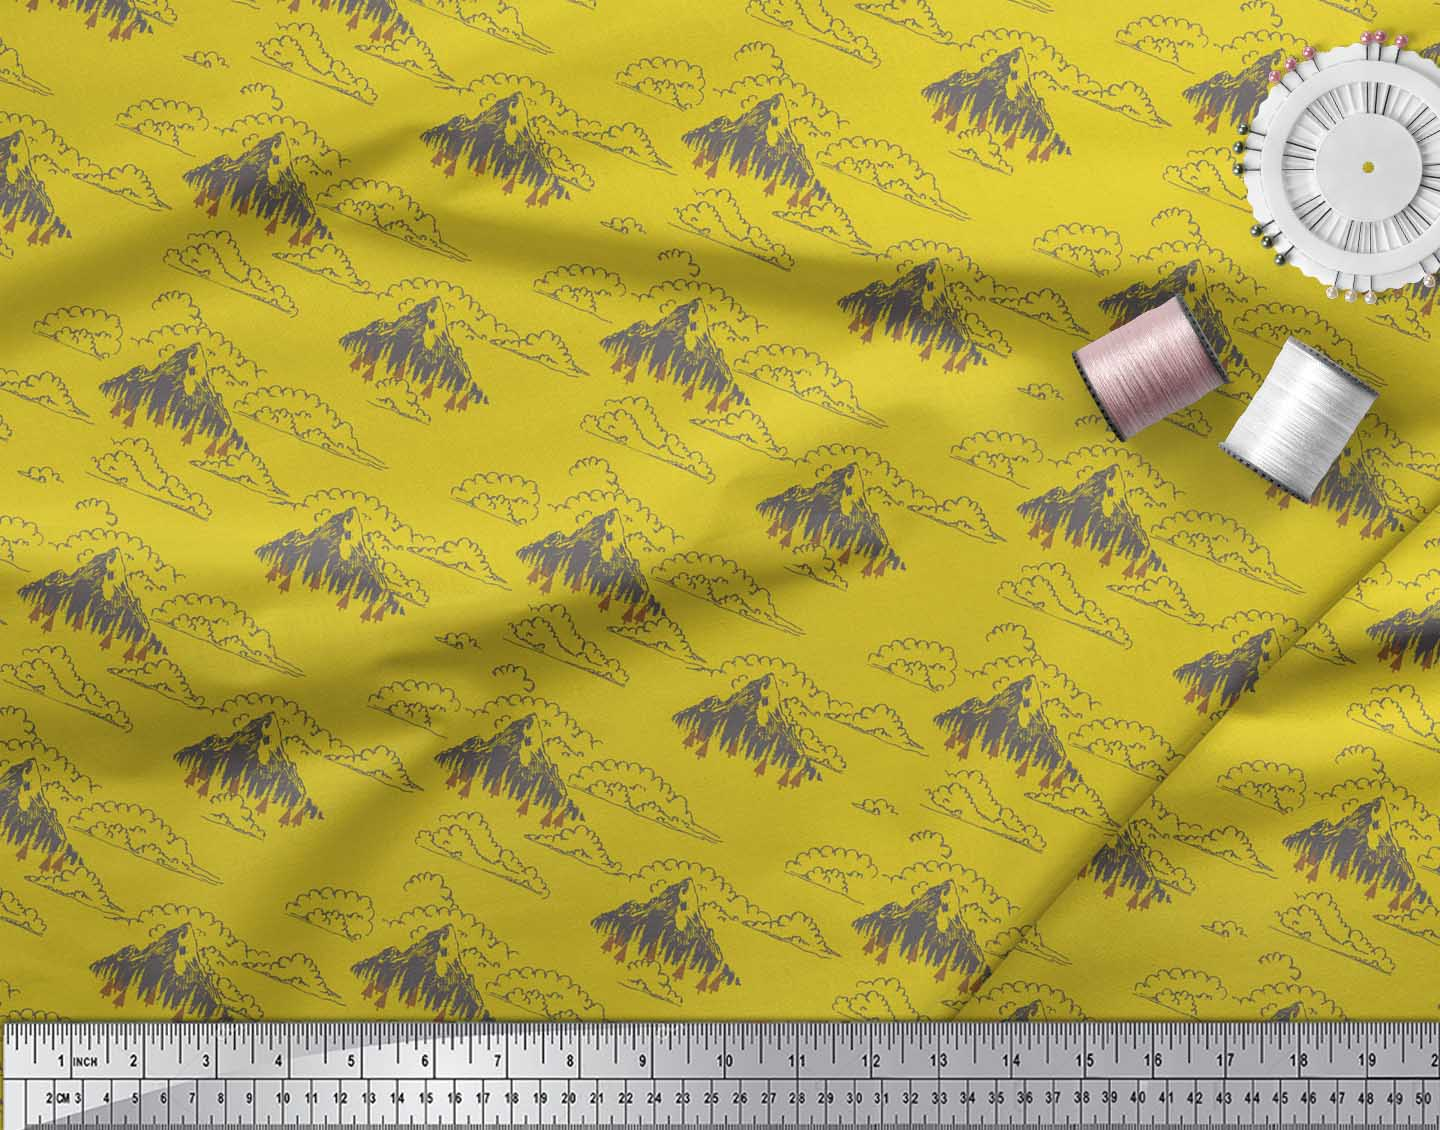 Soimoi-Yellow-Cotton-Poplin-Fabric-Cedar-Tree-amp-Mountain-Nature-Gjt thumbnail 3